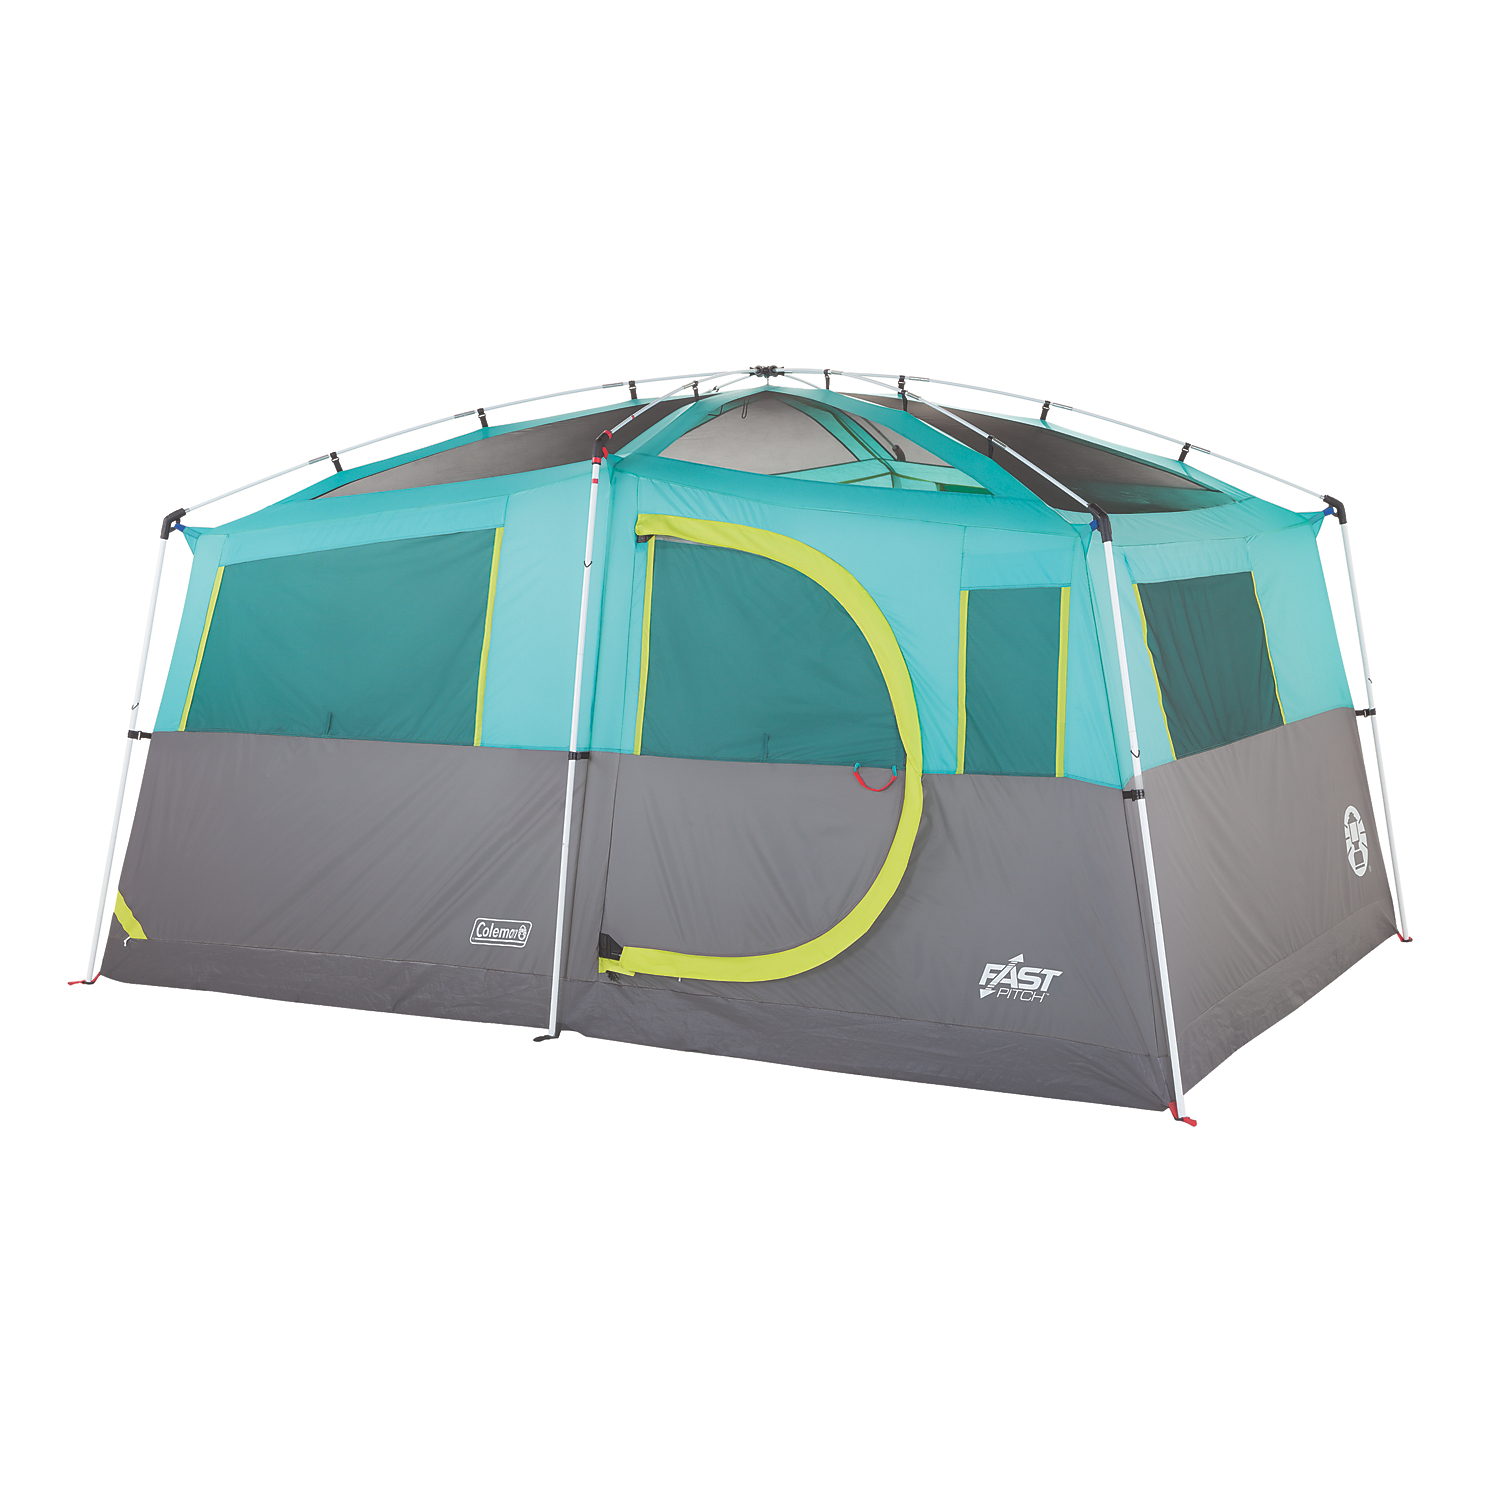 3be75daa913 Coleman Tenaya Lake Lighted Multi-person Tent 2000029969